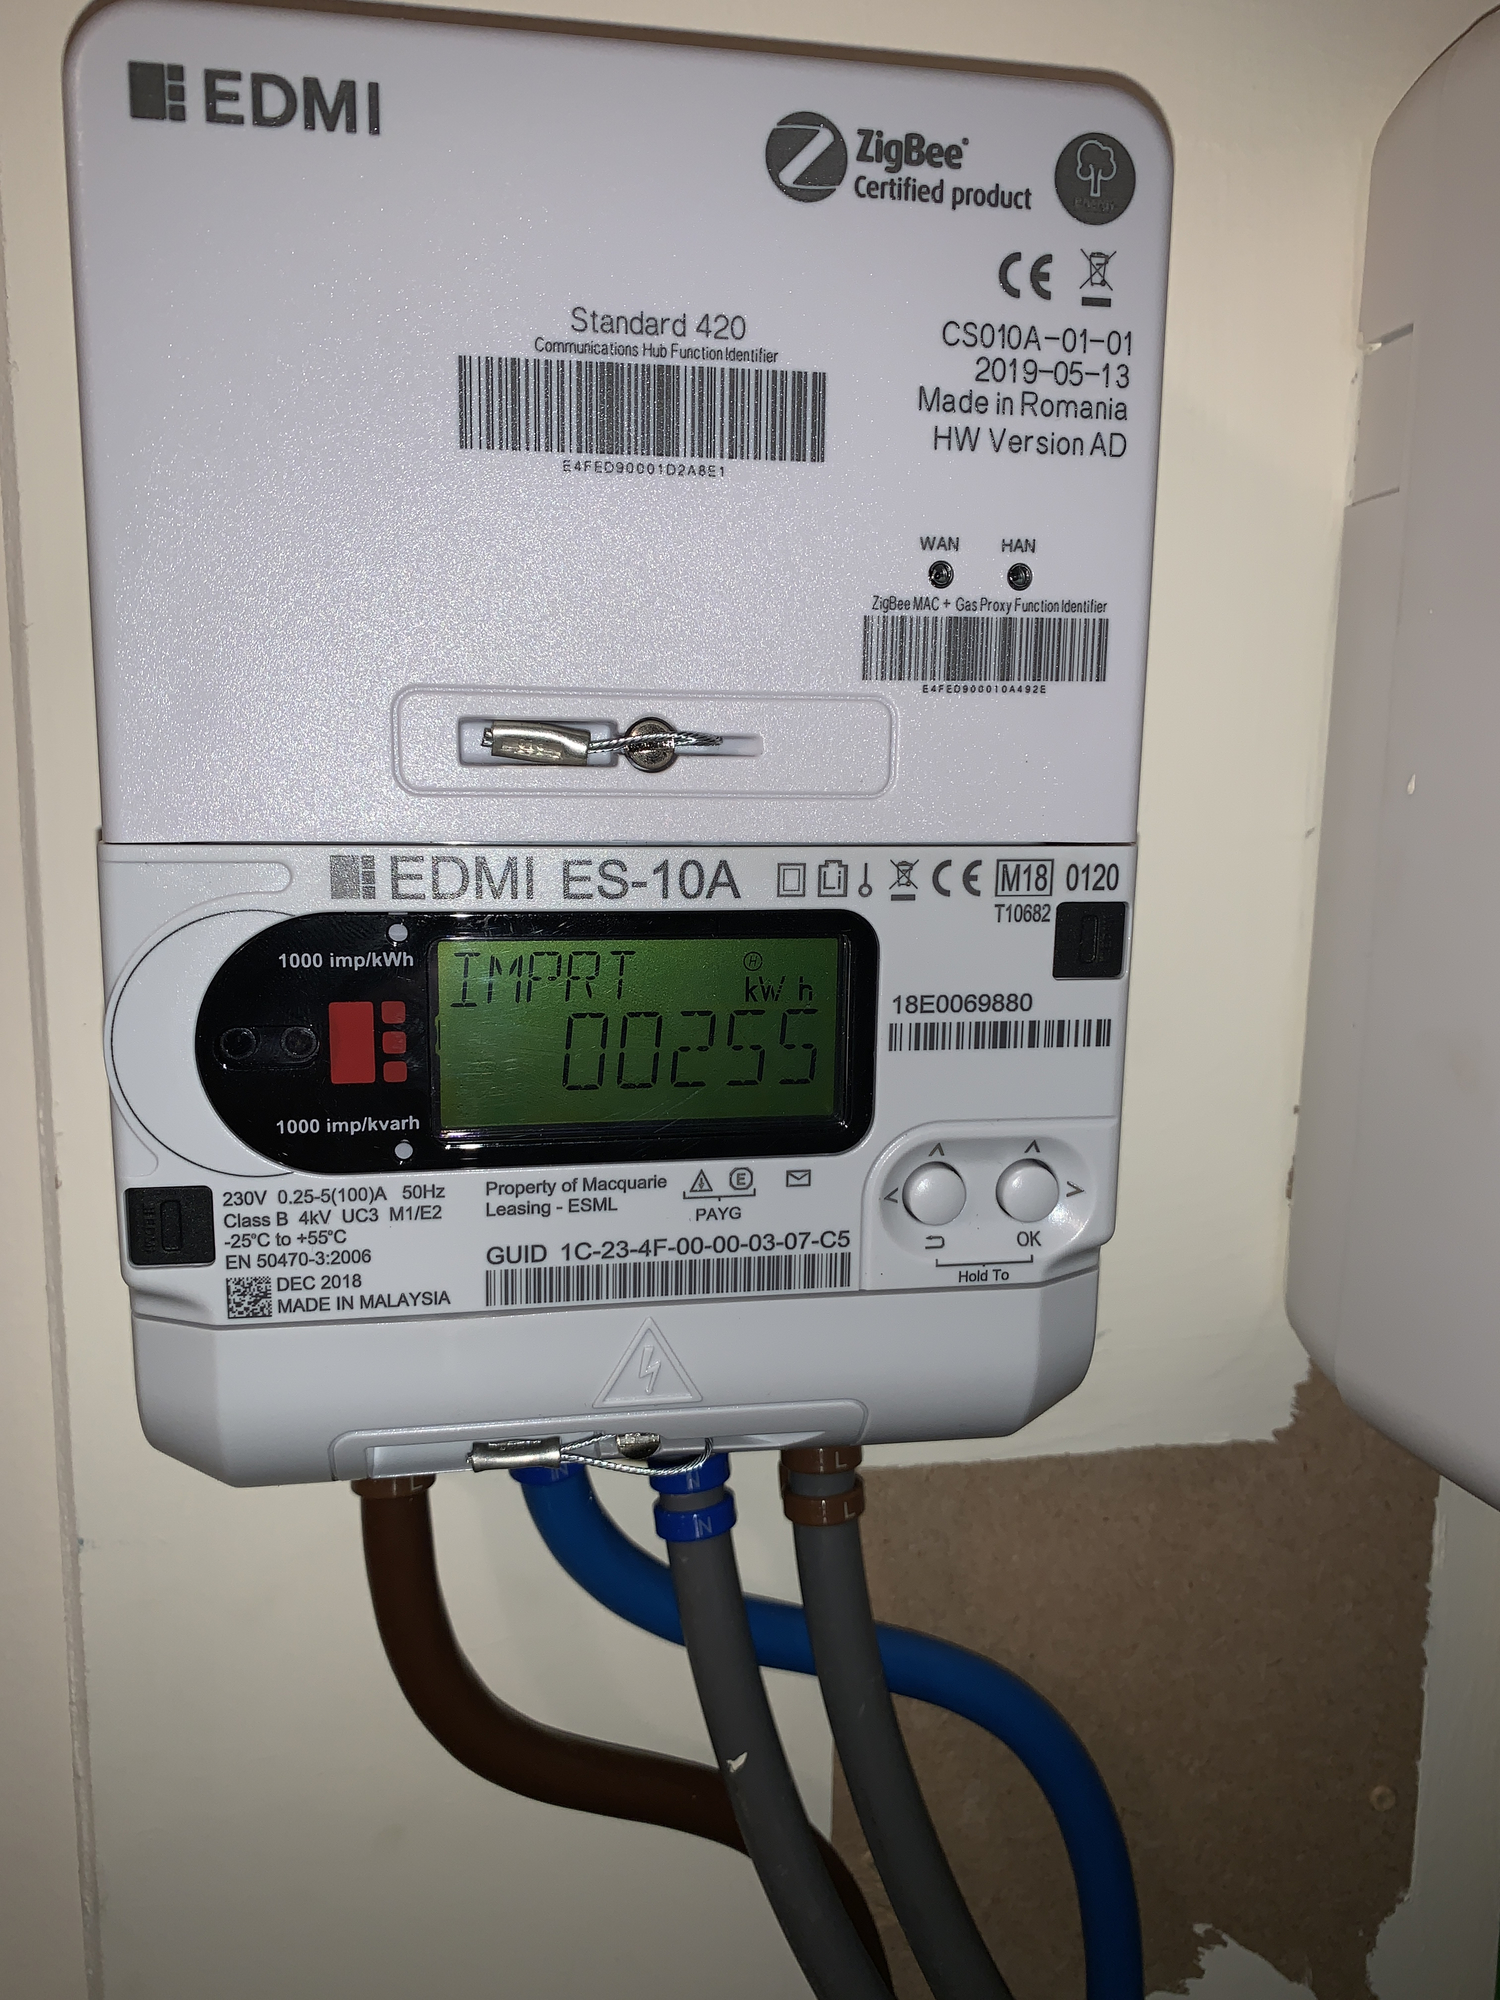 SMETS2 - Smart Meter Models Recommended? and Switching ...